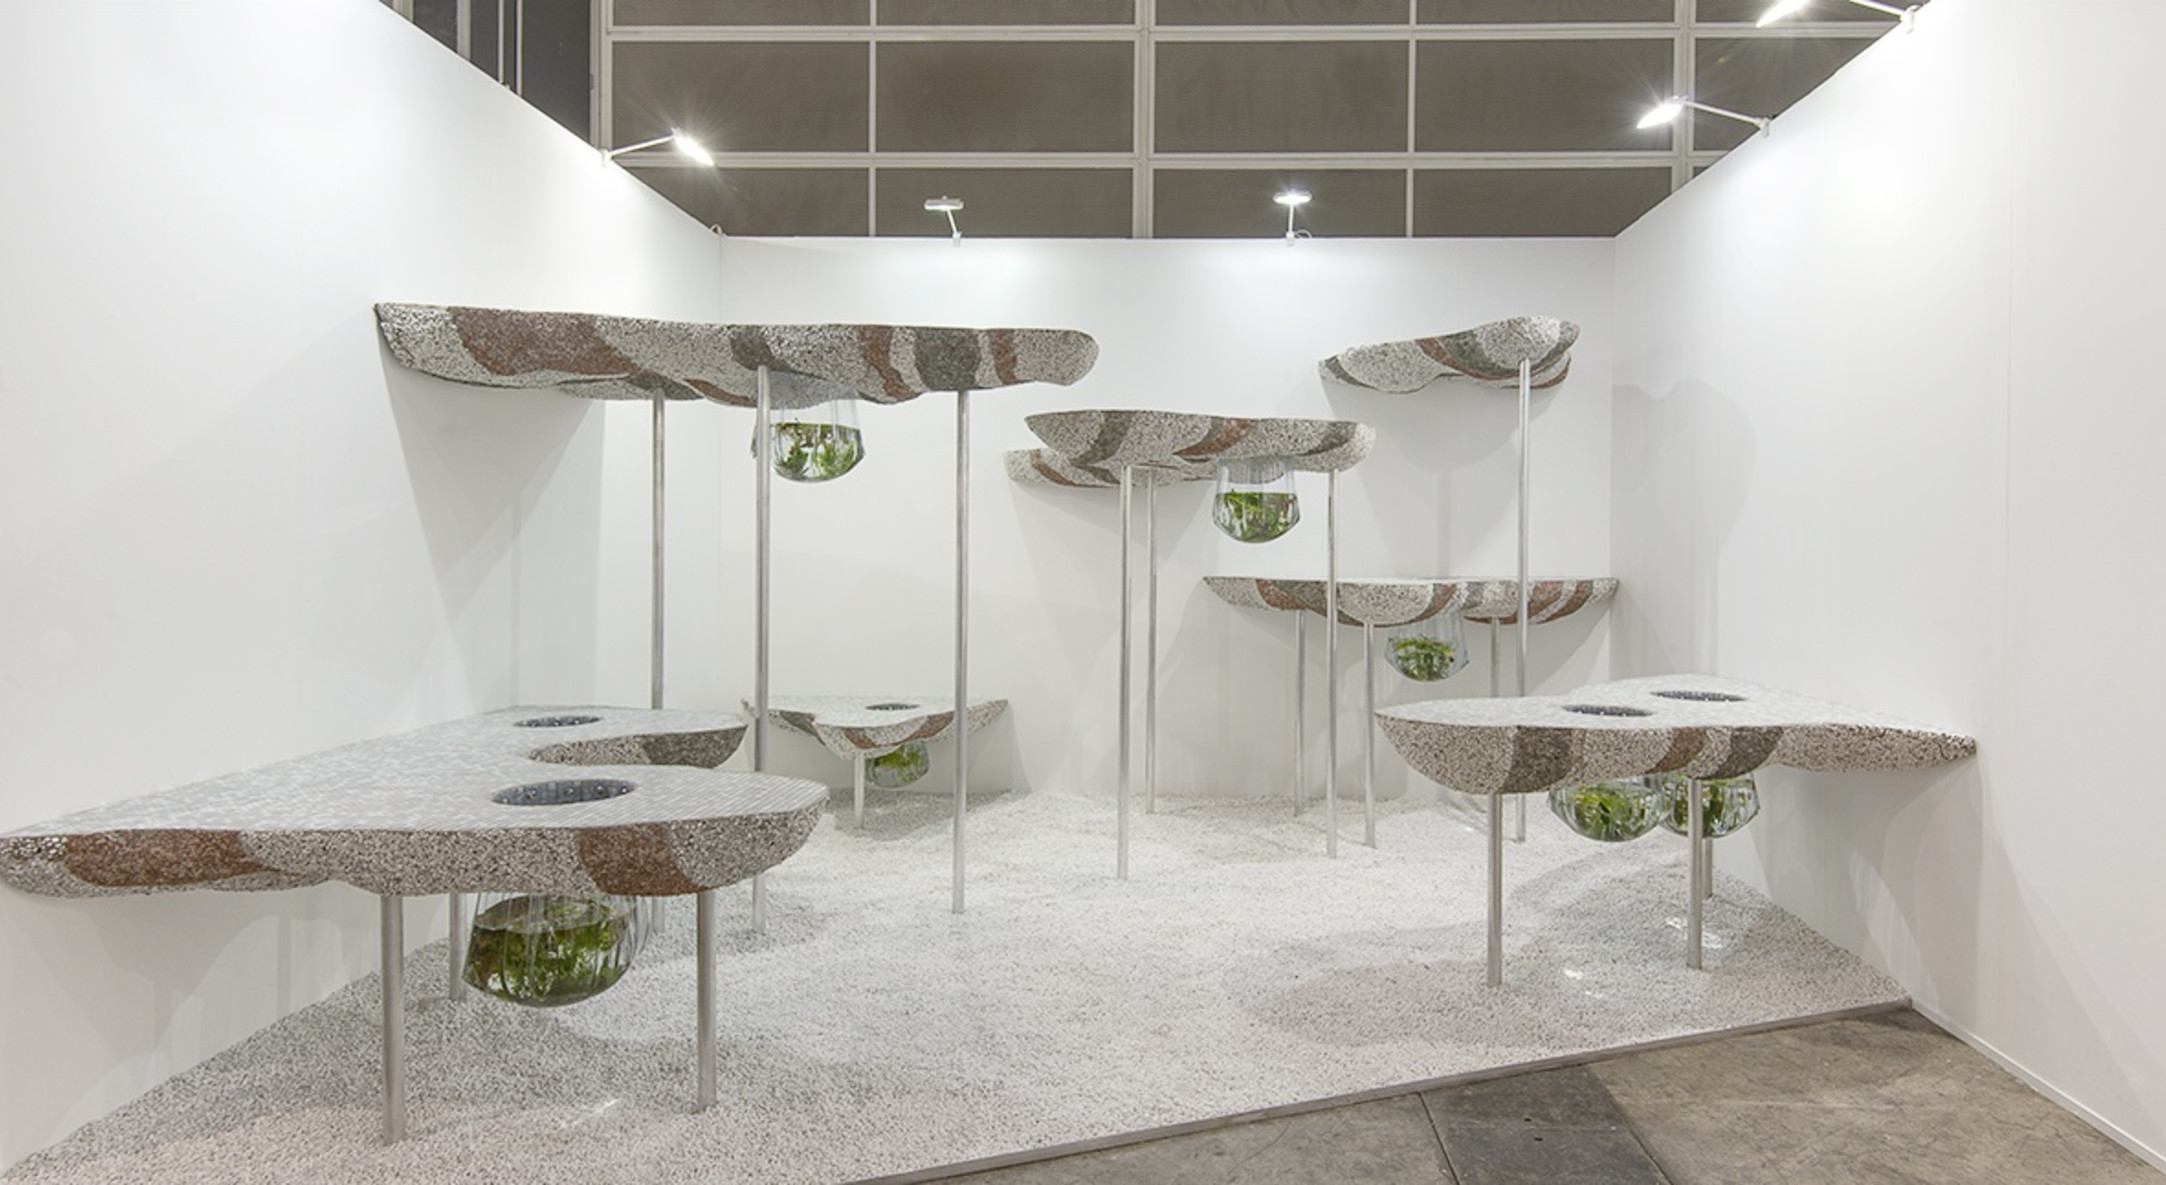 Installation view of Rachael Champion, Plough Layer, Source Rupture at Hales Gallery booth at Art Basel Hong Kong 2015